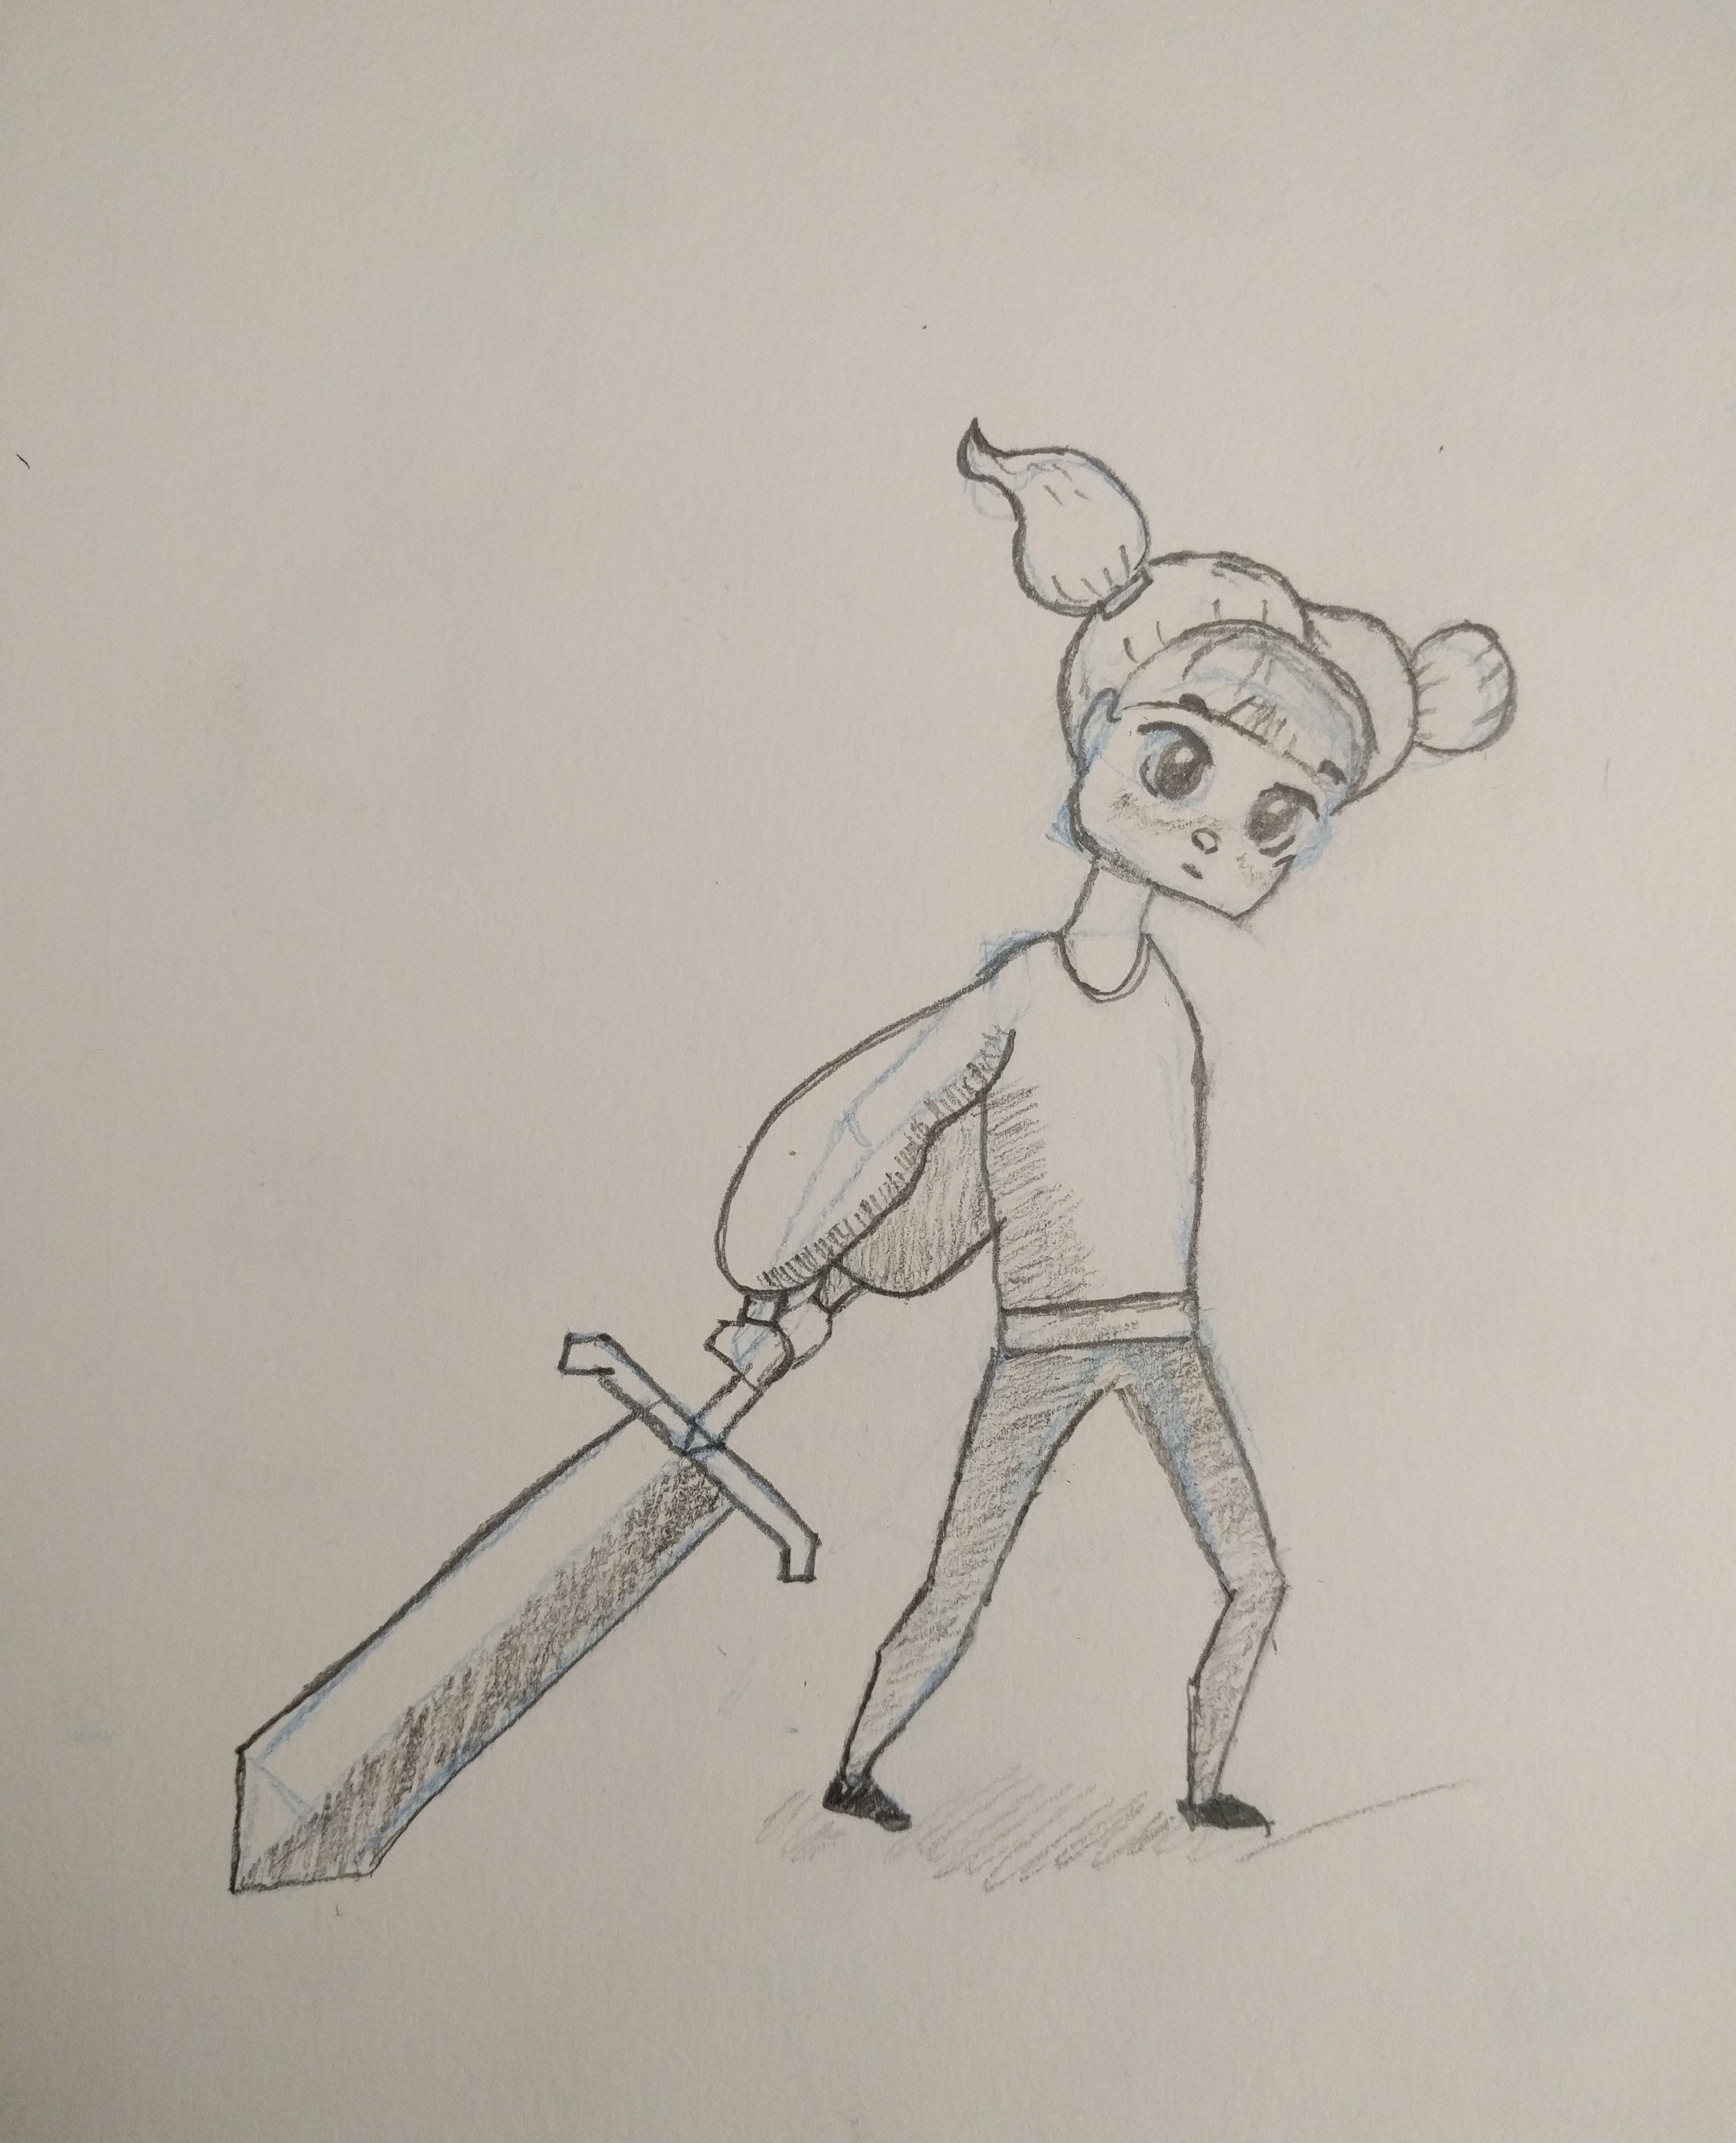 View larger image cartoon girl with huge sword